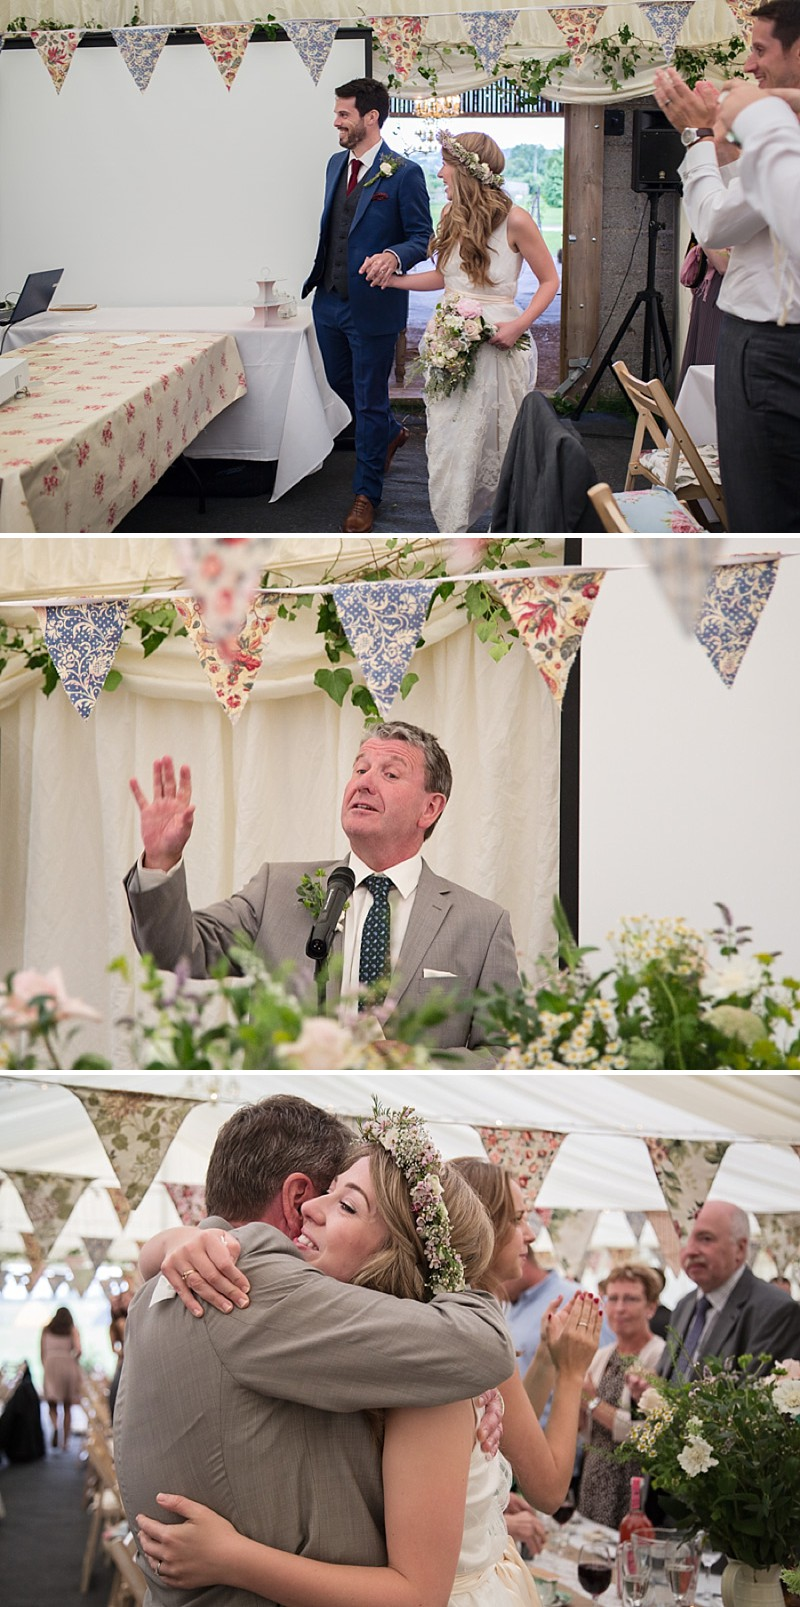 Rustic Marquee Wedding In The South West At Court Farm Near Bath With Bride In Charlie Brear Gown From The Decades Collection And Groom In Navy Reiss Suit rom Isabel Maria Of Allister Freeman Photography_0008